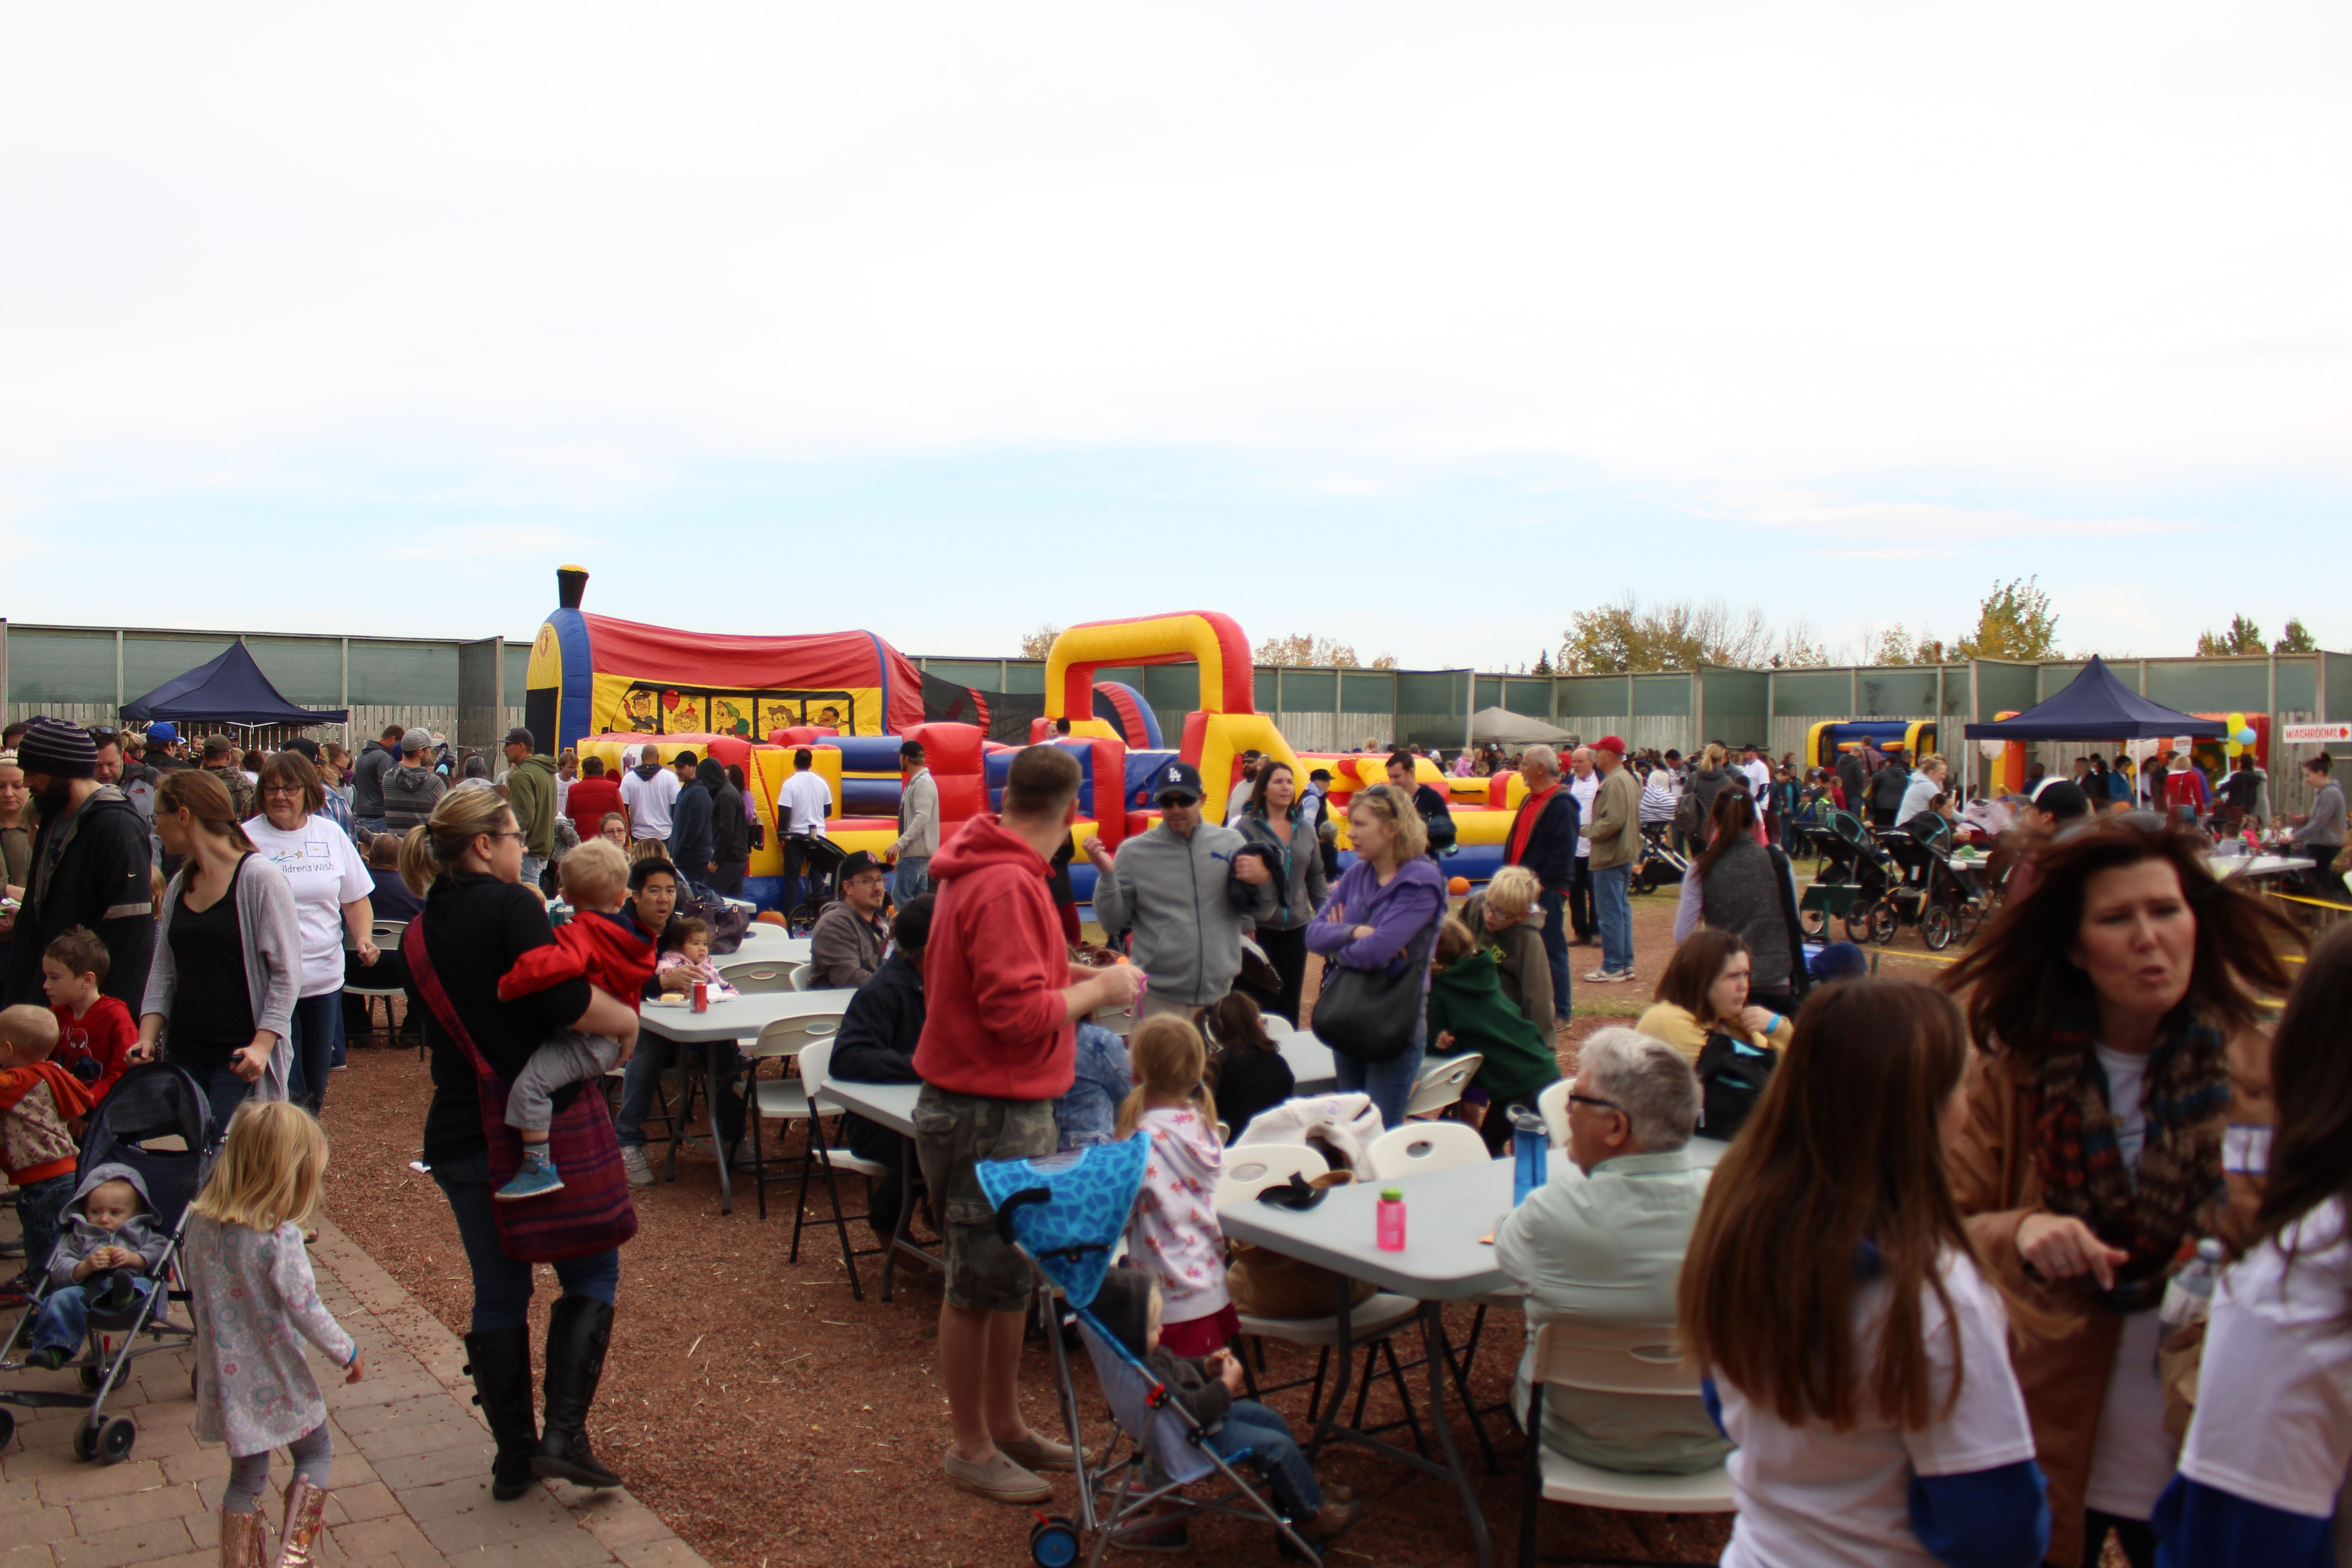 Lots of people came out to the Giant Pumpkin Festival for a day of fun and fundraising for the Children's Wish Foundation on Saturday Sept. 30, 2017